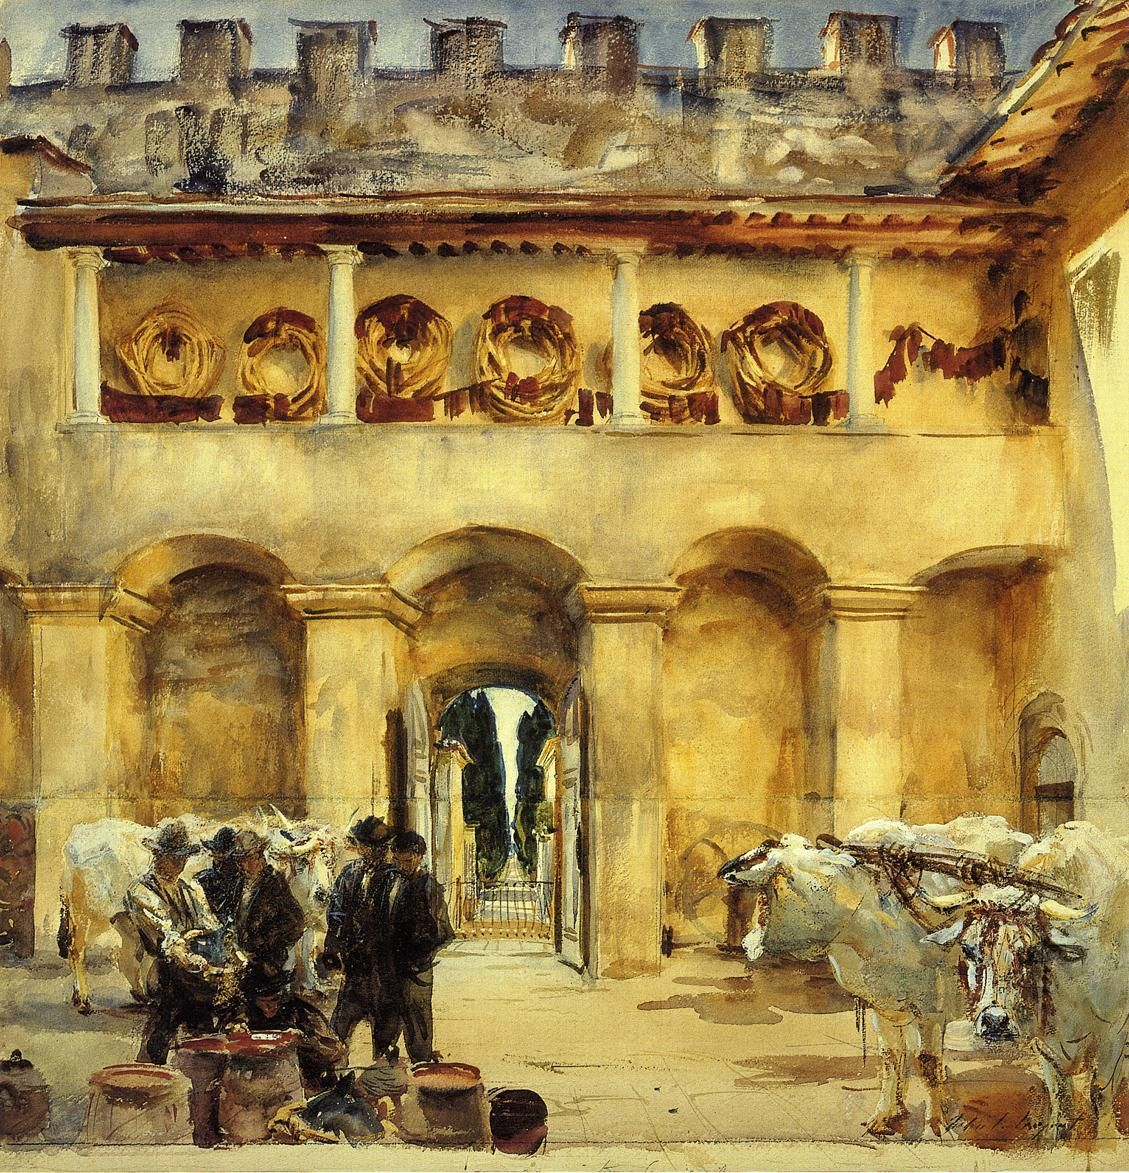 Florence: Torre Galli (1910) by John Singer Sargent (Museum of Fine Arts, Boston, Mass) (Viewed as part of the John SInger Sargent Watercolors exhibit 2014)